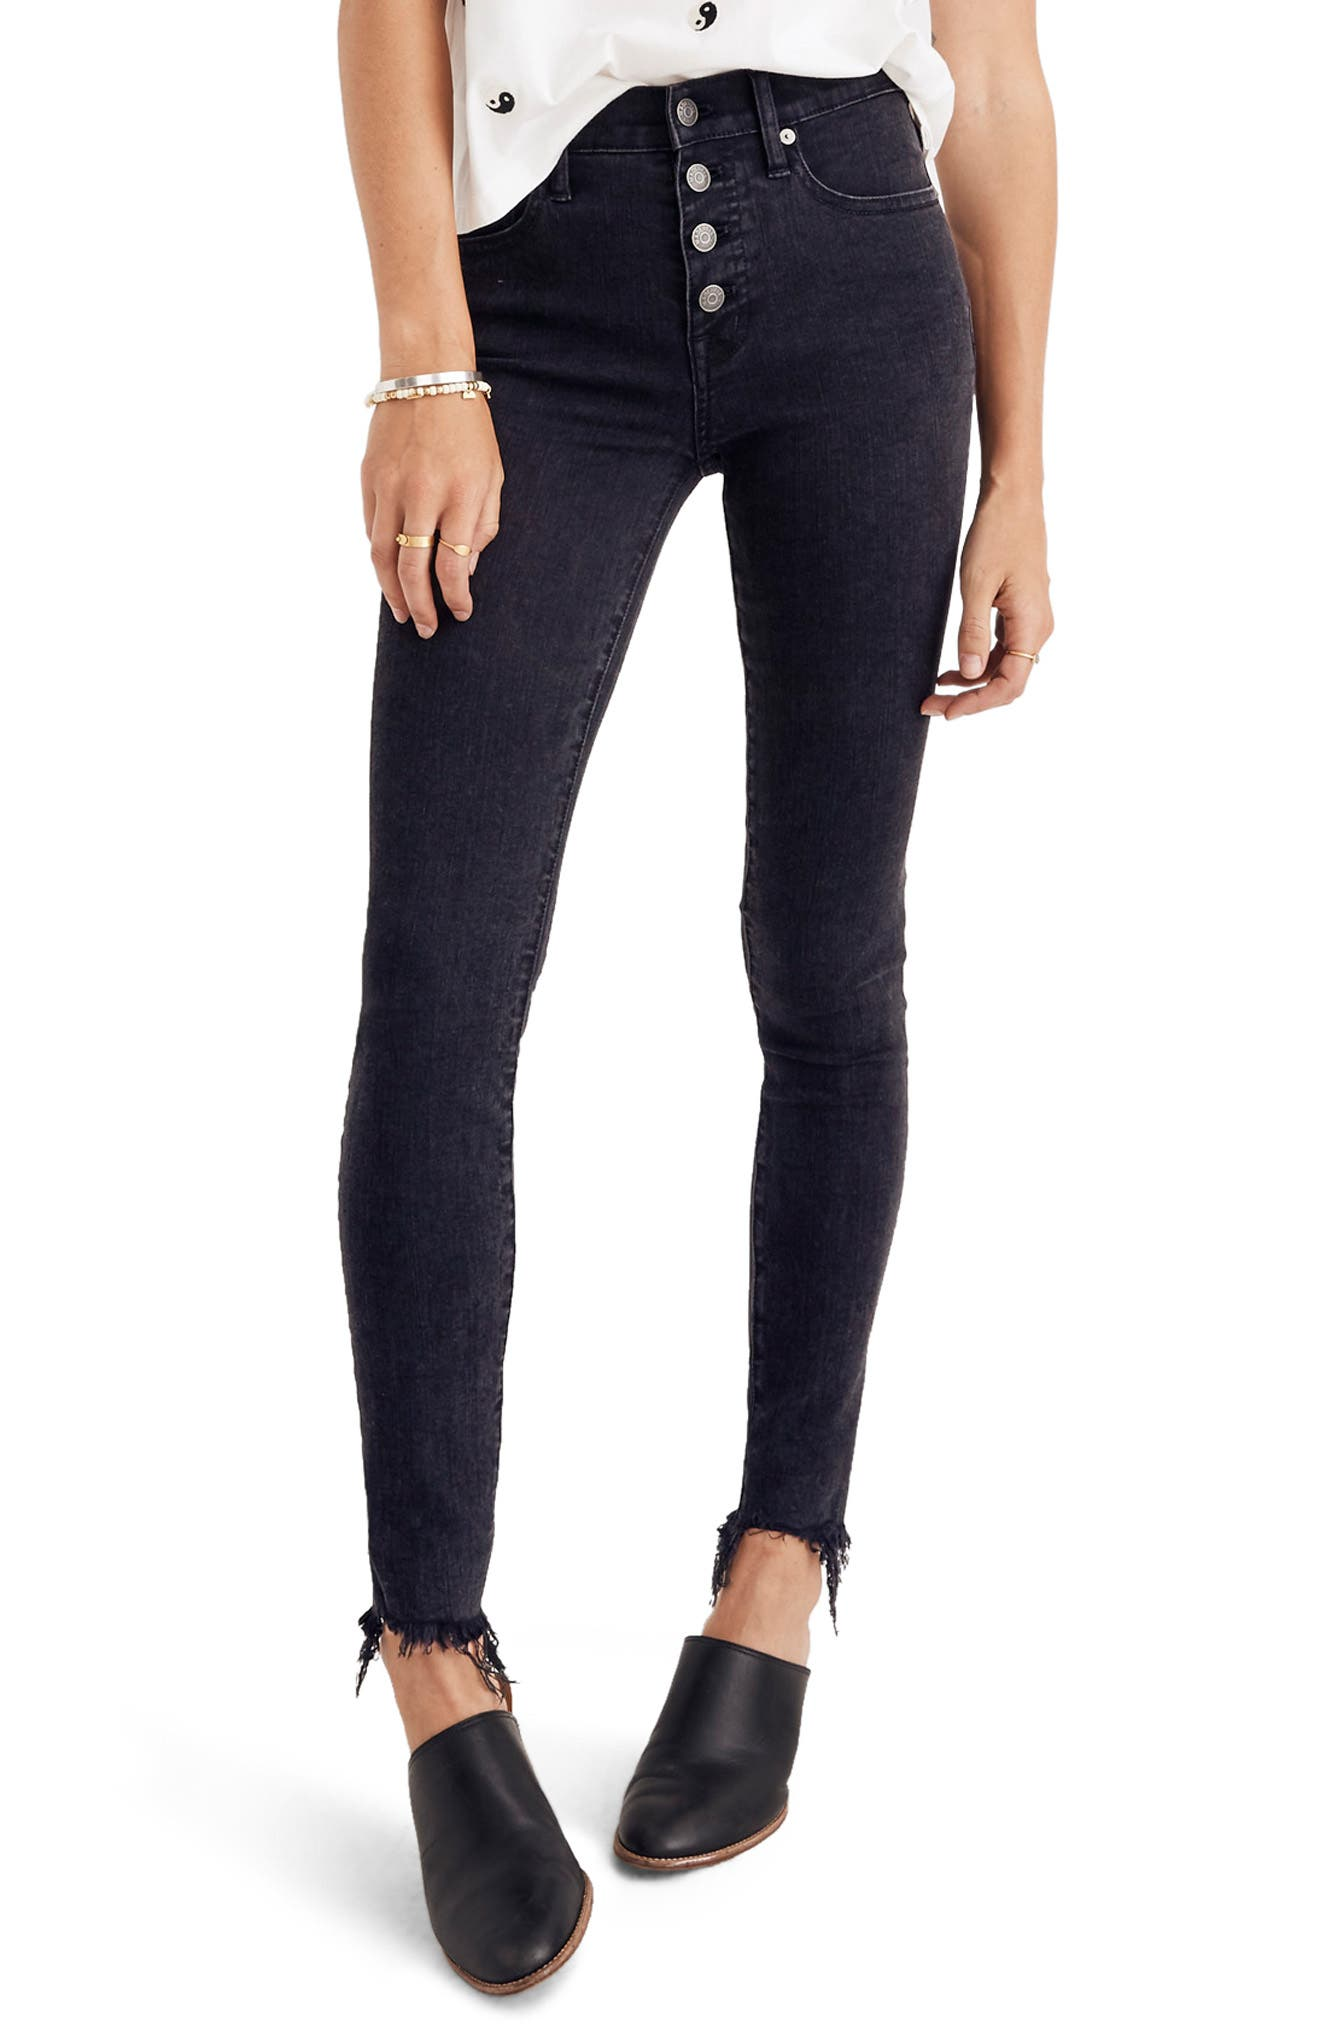 MADEWELL, 9-Inch Button High Waist Ankle Skinny Jeans, Main thumbnail 1, color, BERKELEY WASH